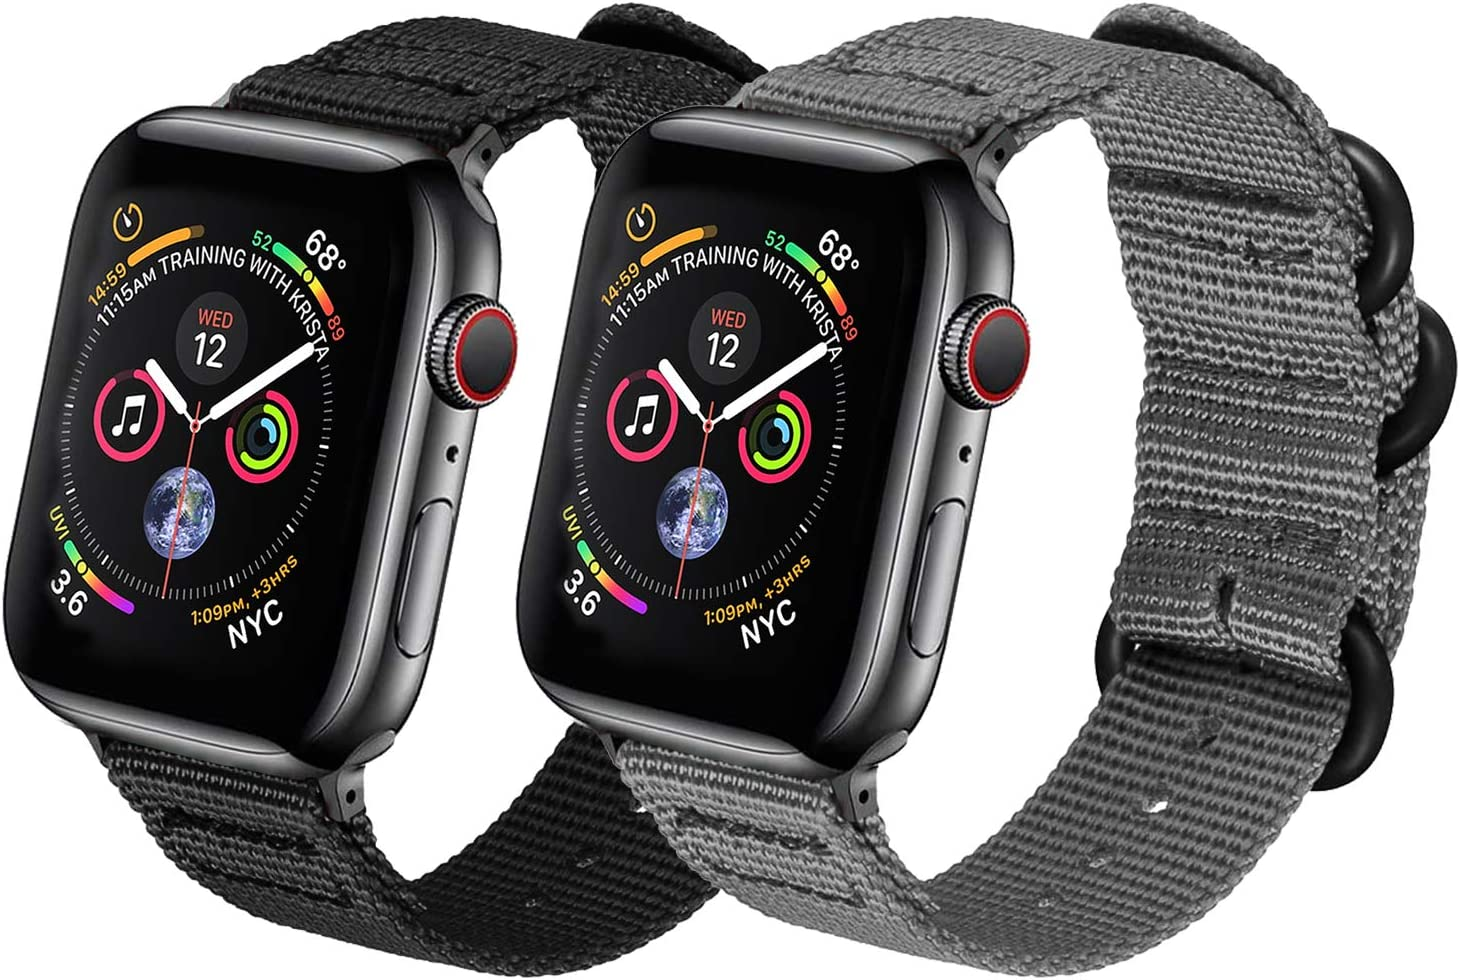 Watpro Compatible with Apple Watch Band 38mm 40mm 42mm 44mm Women Men Nylon Rugged Replacement iWatch Band Military-Style Buckle Grey Adapters for Sport Series 5 4 3 2 1 (2-Black+Gray, 42MM/44MM)